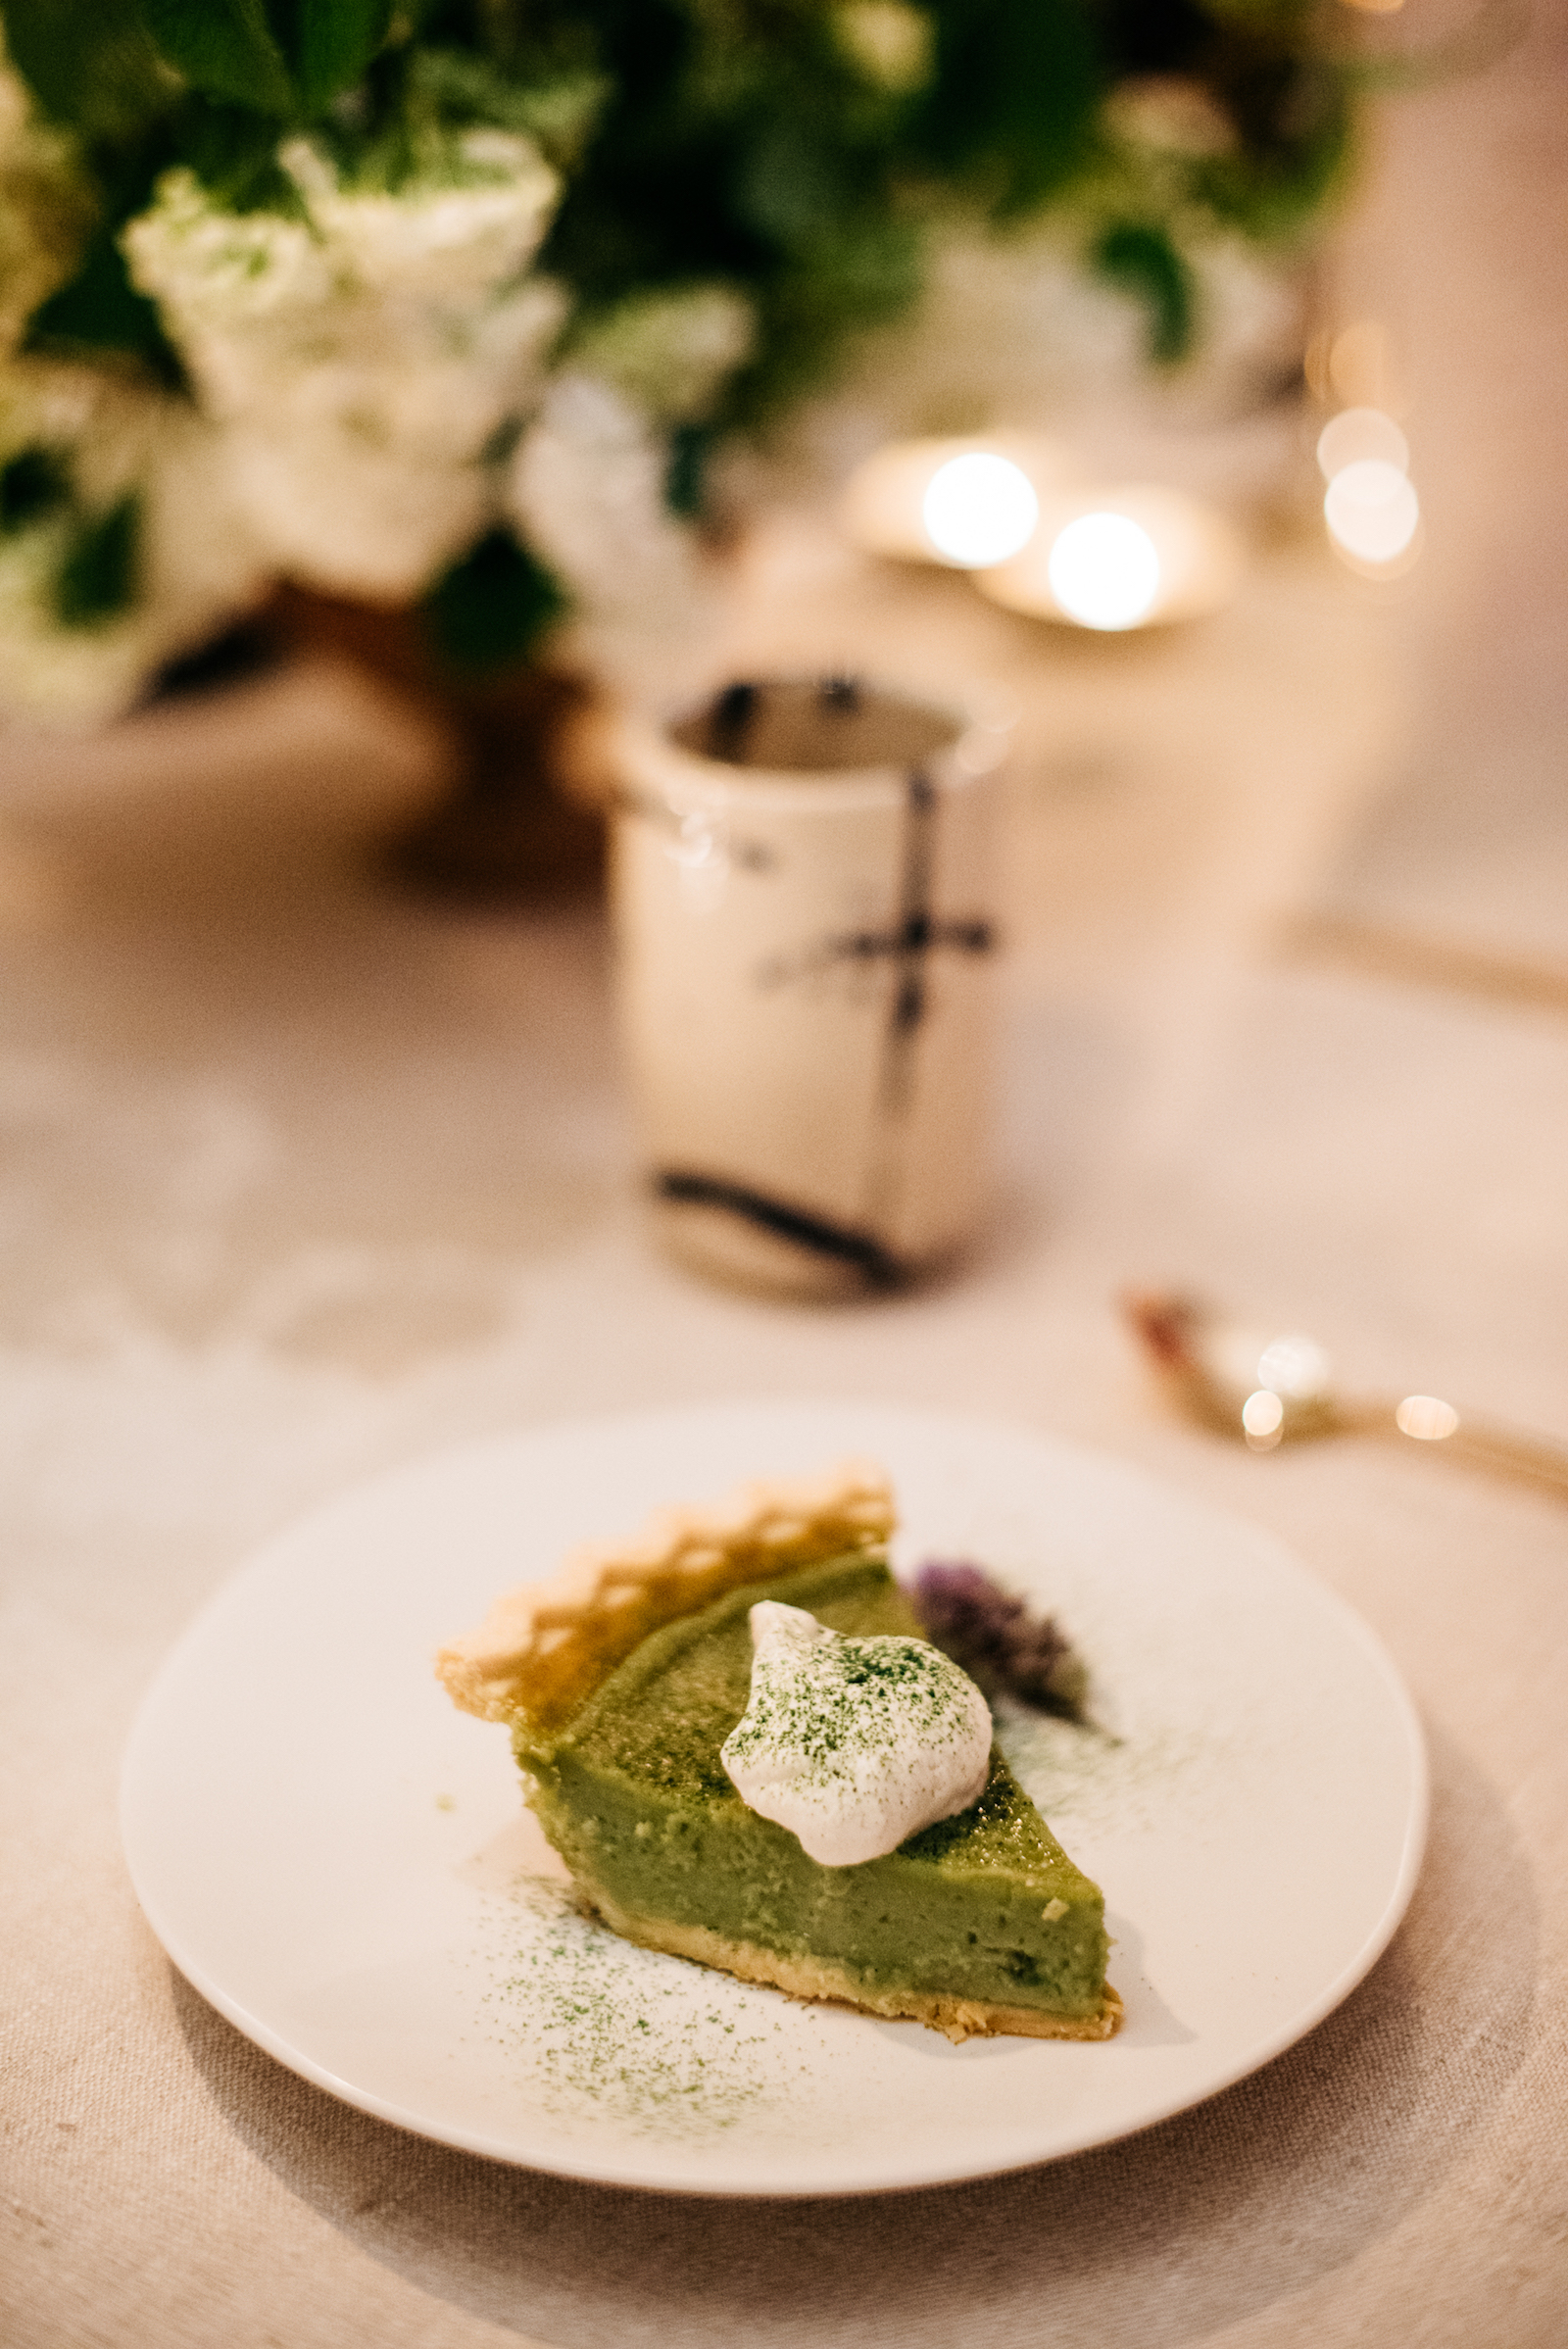 Lee Tilghman's matcha pie